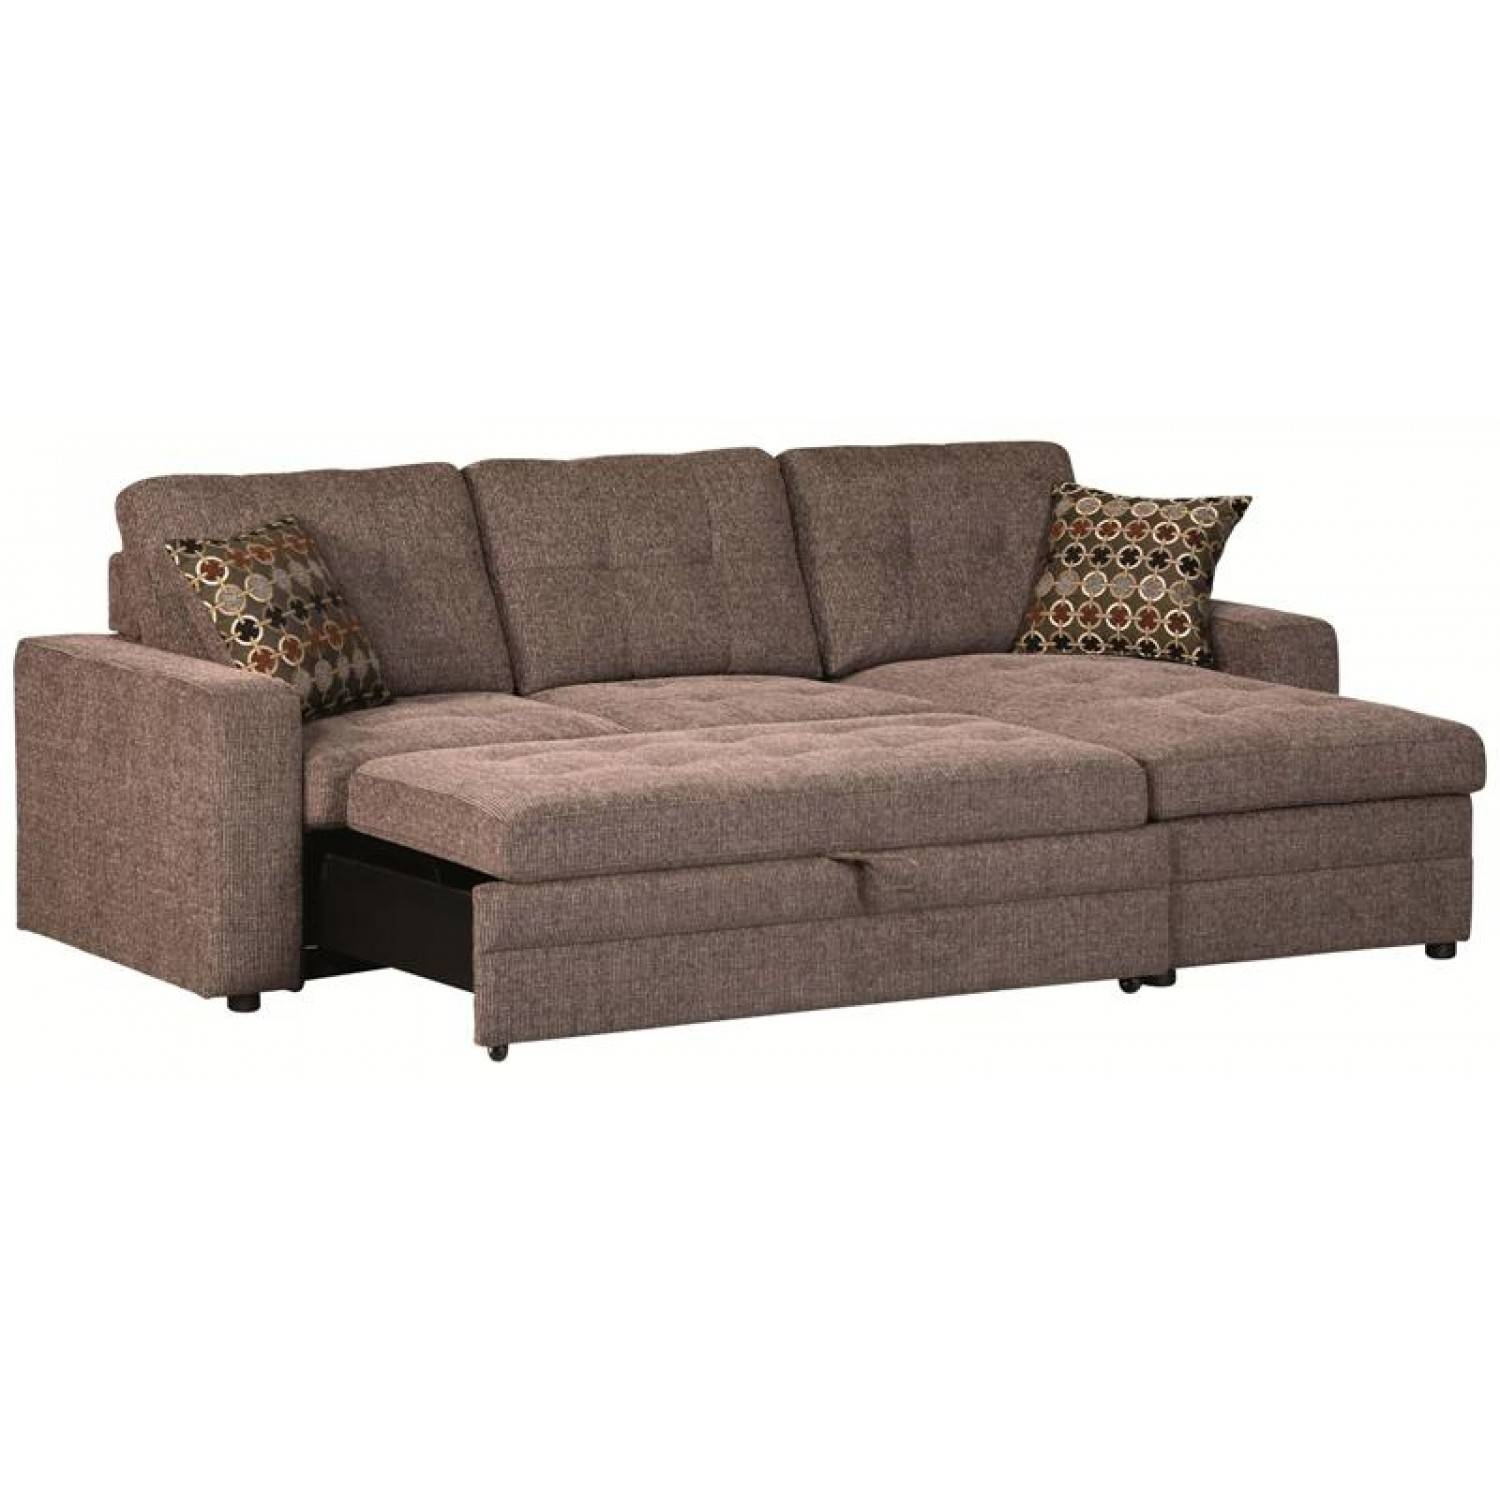 Sofas Center : Chocolate Sofa Pull Out With Storage Gray Sofas pertaining to Cheap Sofas Houston (Image 24 of 30)